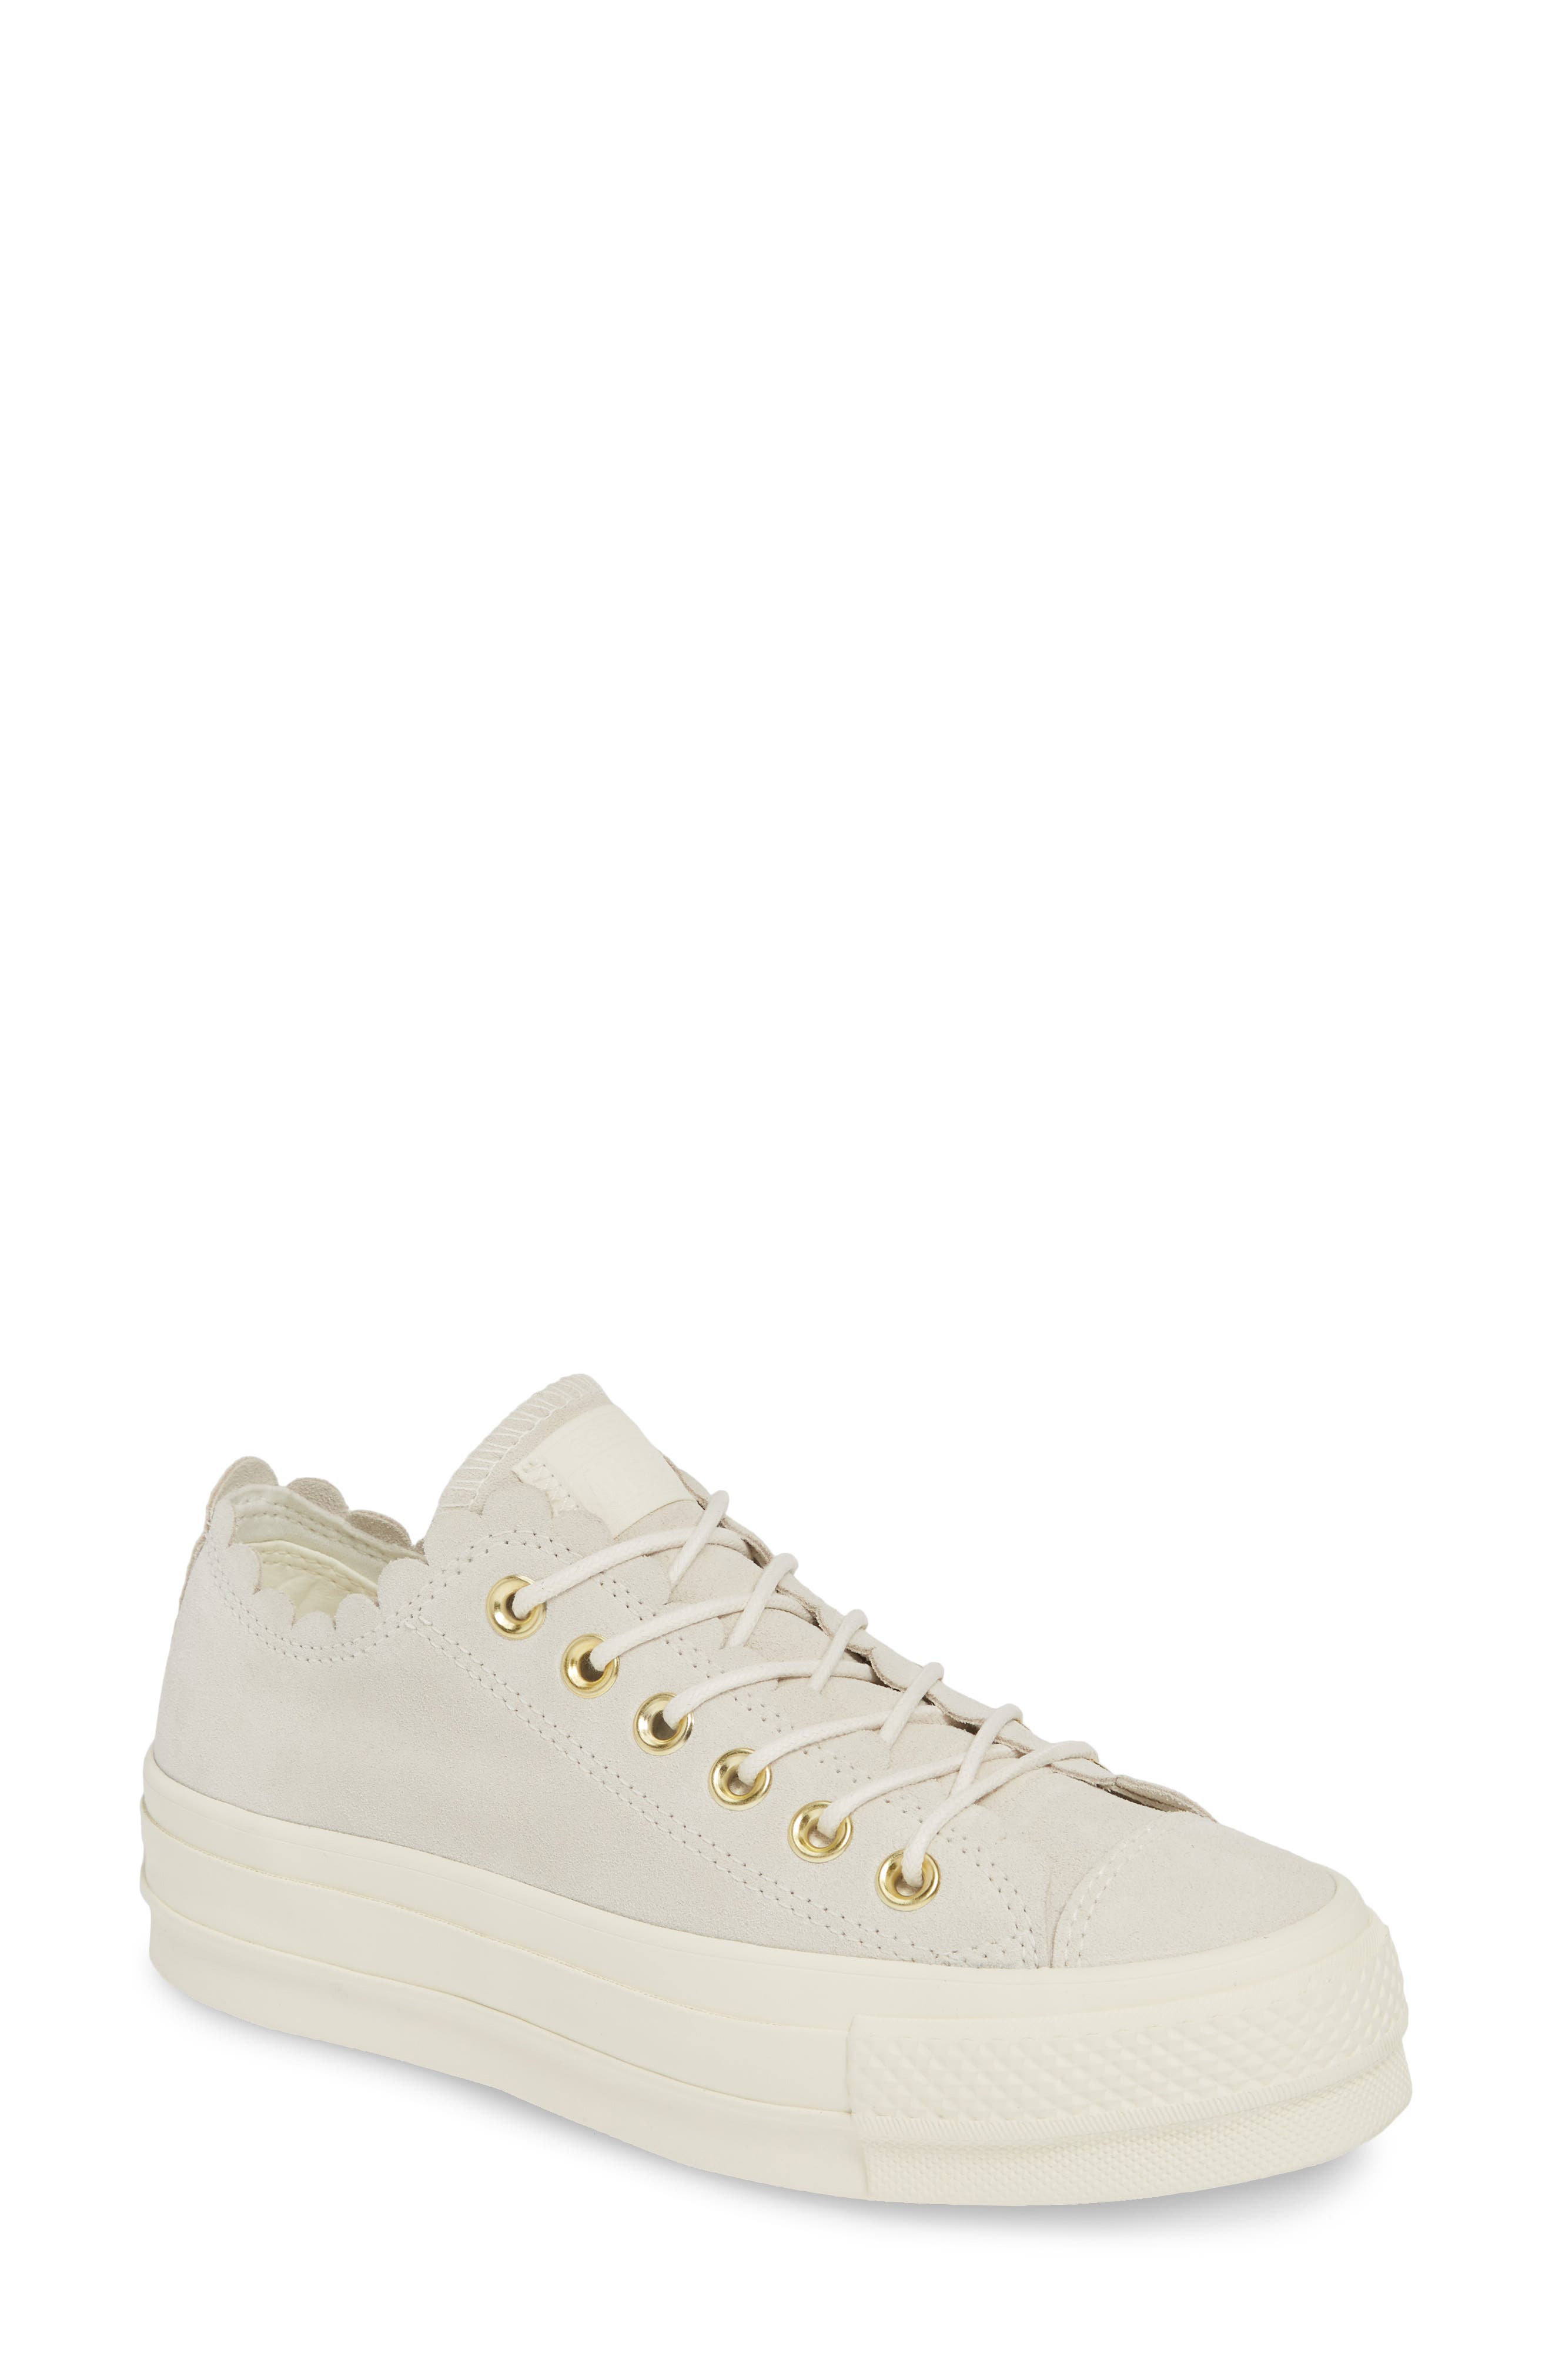 Chuck Taylor<sup>®</sup> All Star<sup>®</sup> Frilly Scallop Platform Sneaker, Main, color, 020